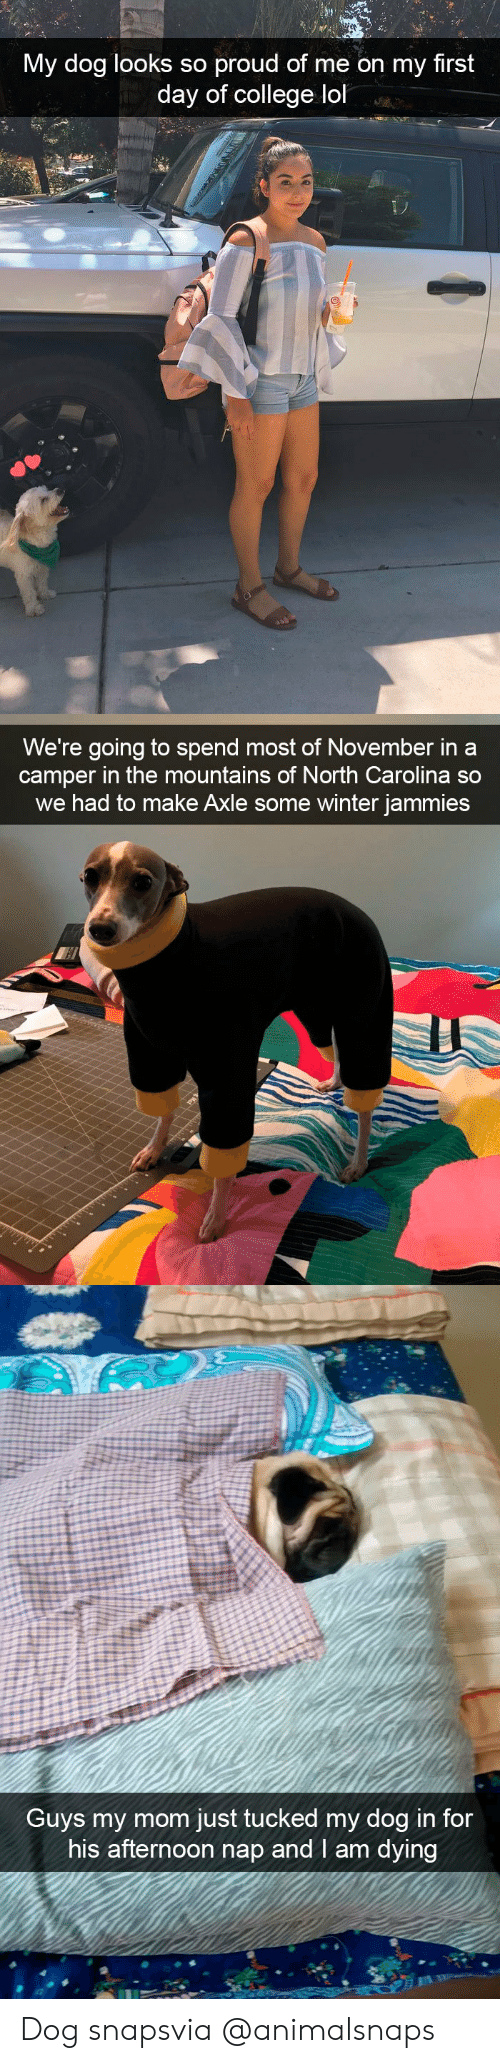 College, Lol, and Target: My dog looks so proud of me on my first  day of college lol   We're going to spend most of November in a  camper in the mountains of North Carolina so  we had to make Axle some winter jammies   Guvs my mom just tucked my dog in for  his afternoon nap and I am dying Dog snapsvia @animalsnaps